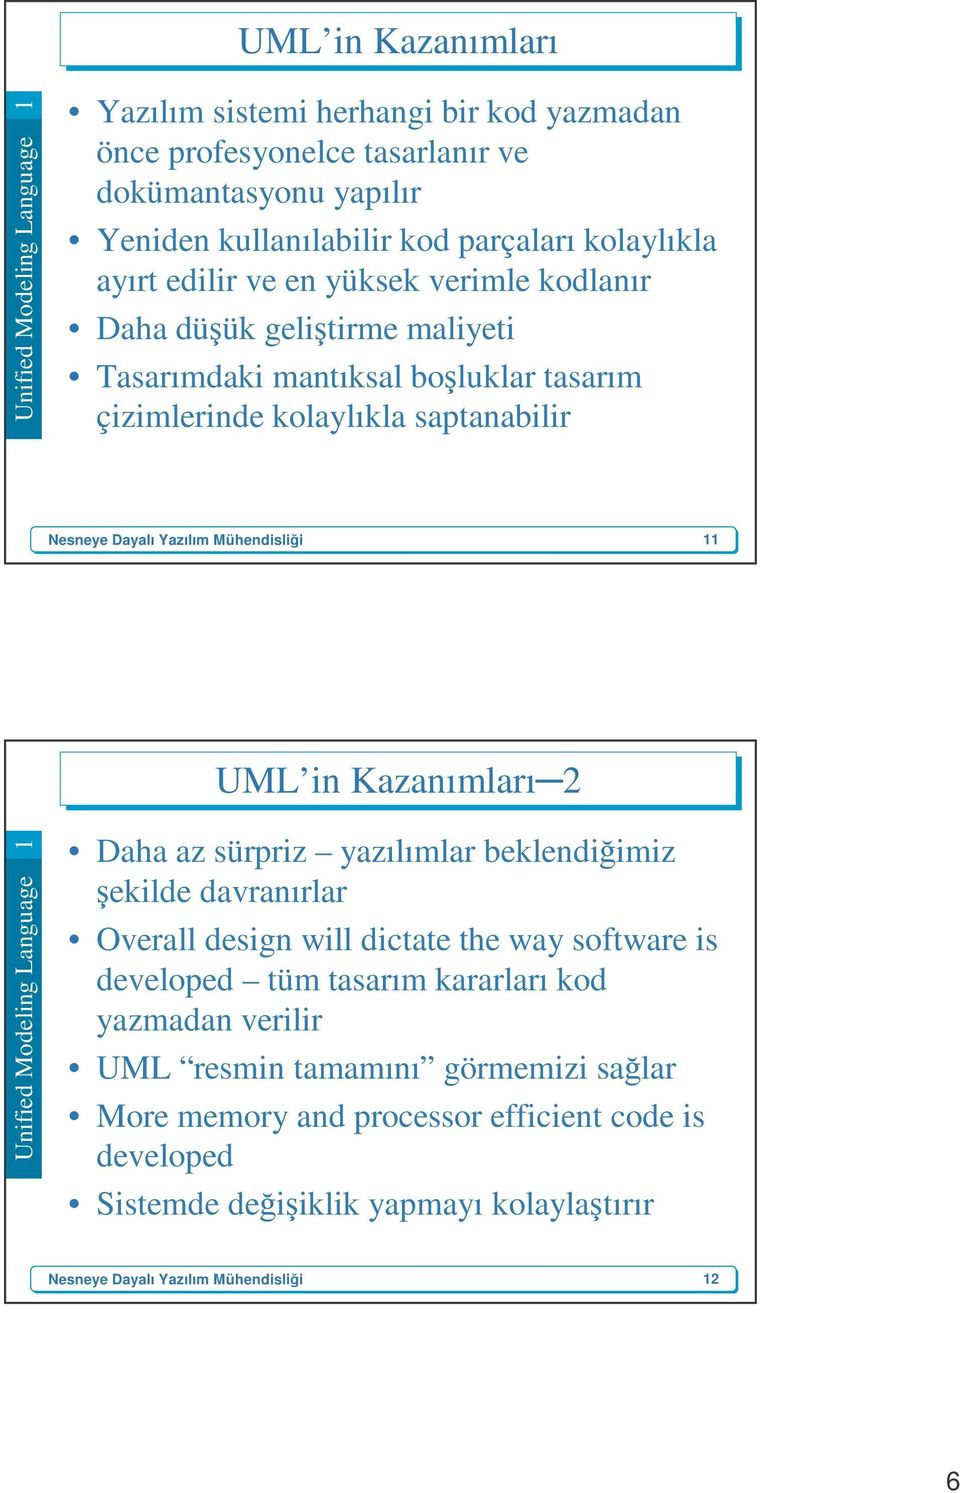 UML in Kazanımları 2 Daha az sürpriz yazılımlar beklendiğimiz şekilde davranırlar Overall design will dictate the way software is developed tüm tasarım kararları kod yazmadan